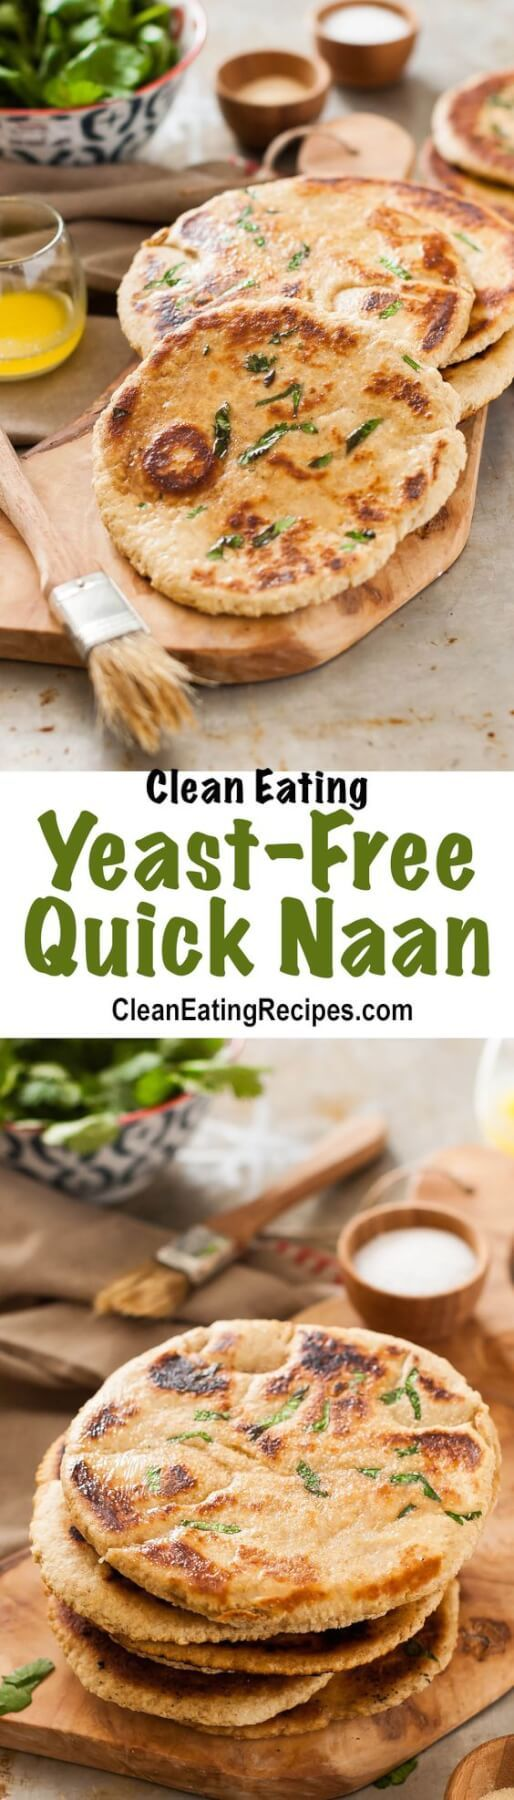 Yeast-Free, Quick Clean Eating Naan Bread Recipe Clean Eating Einkorn Flour Recipes